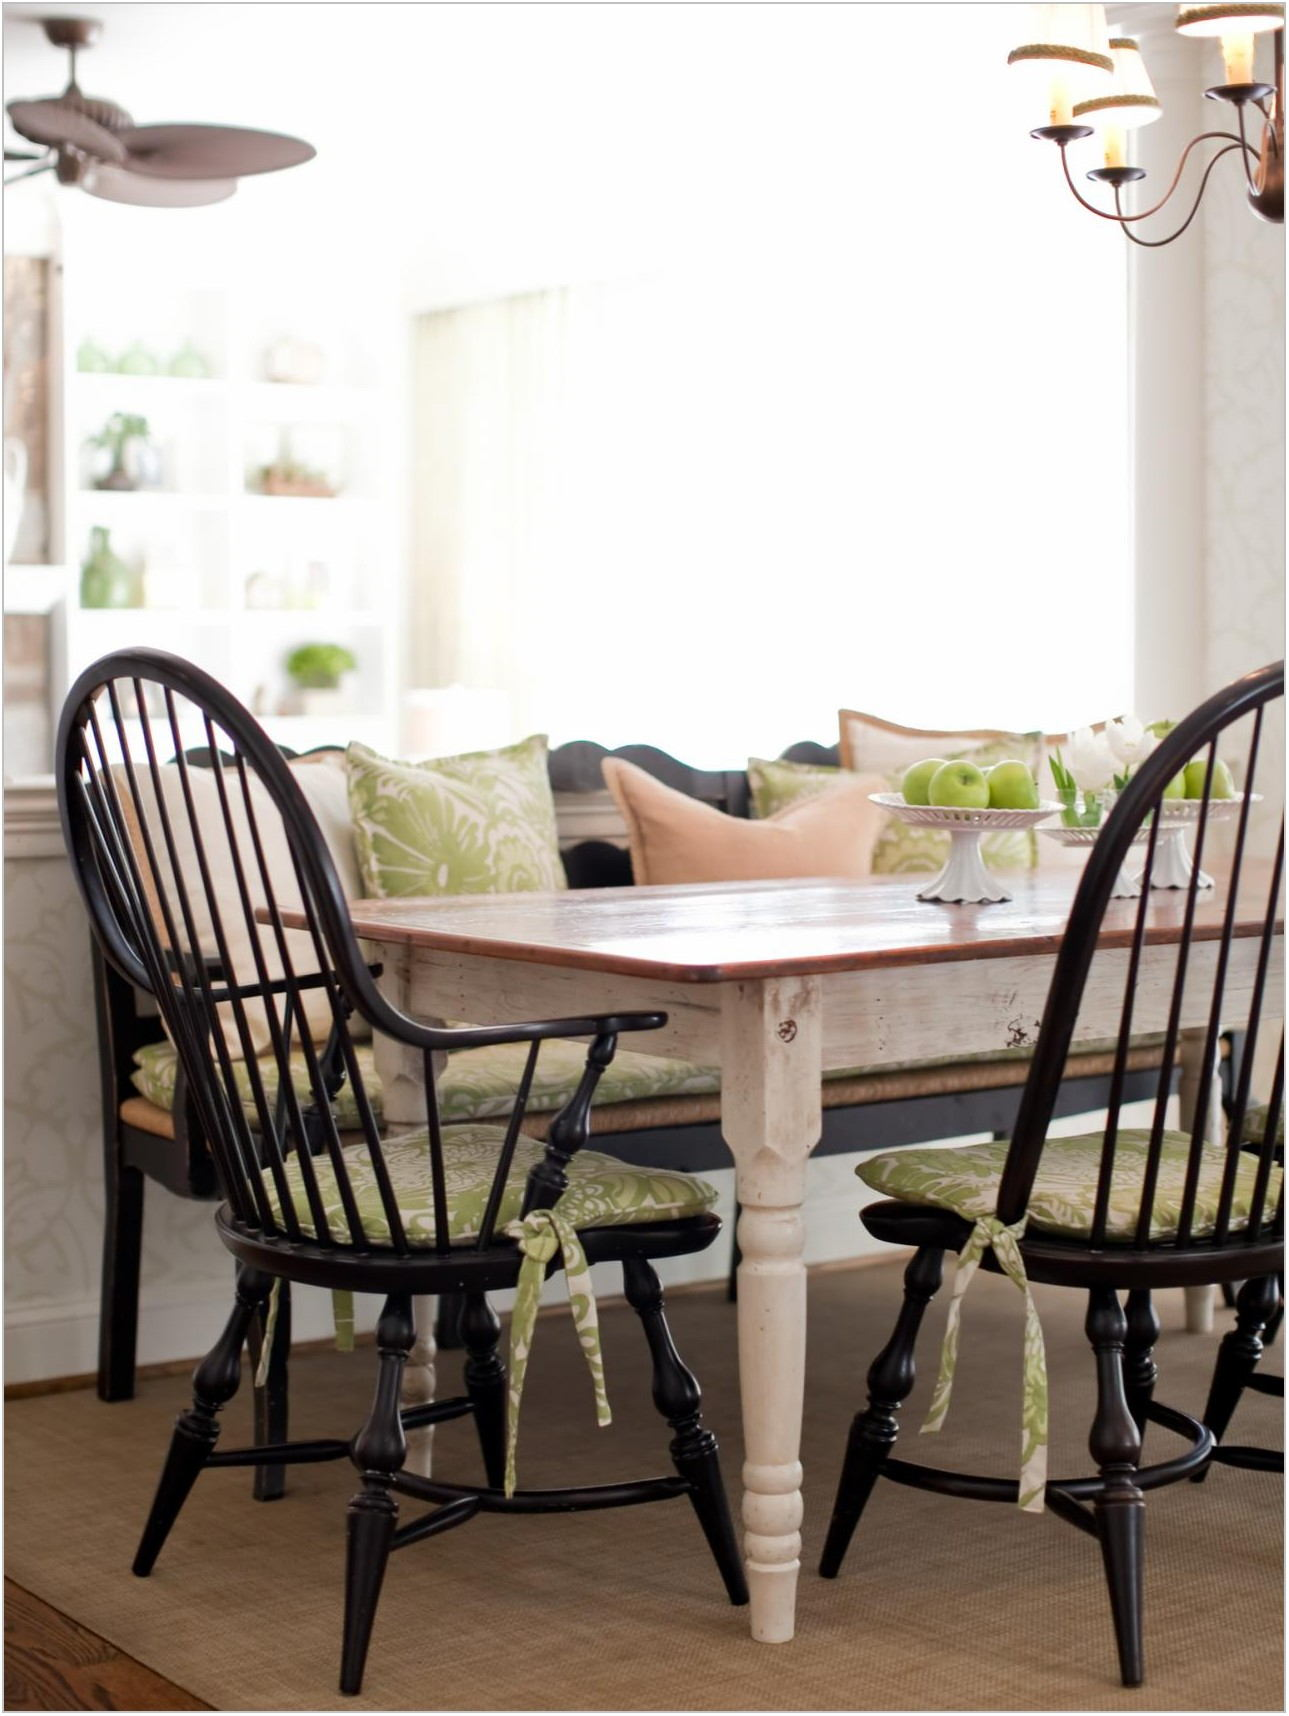 Dining Room Seat Cushions With Ties